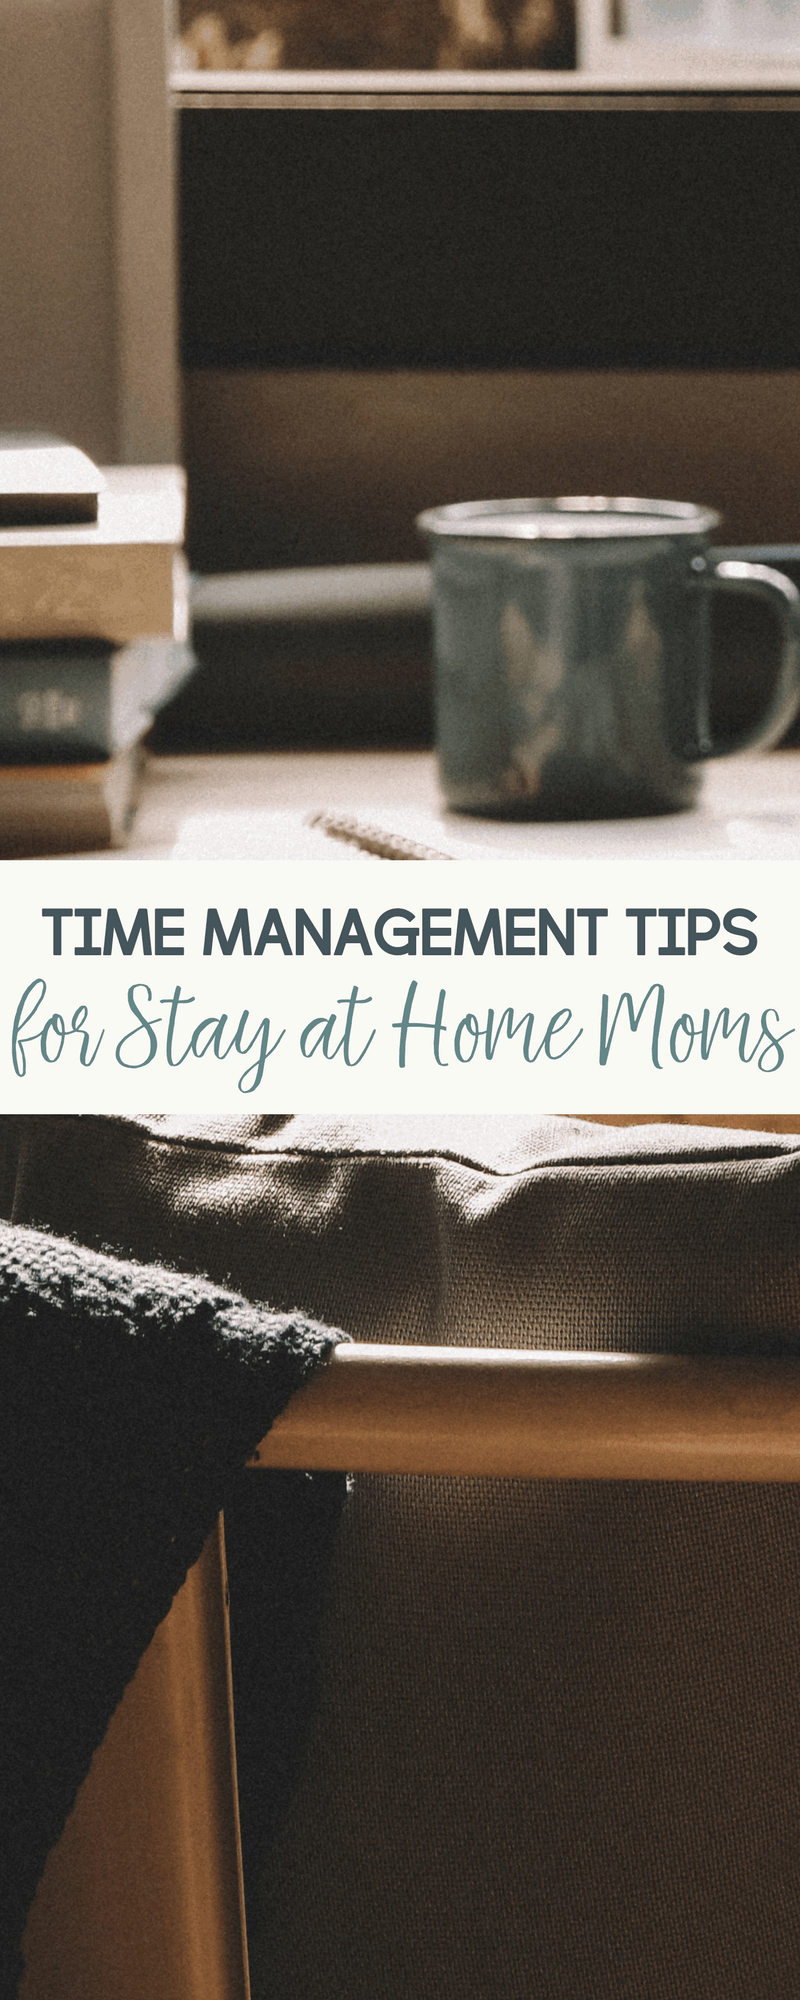 If your time management tips could use some work, be sure to check out these time management tips for stay at home moms.